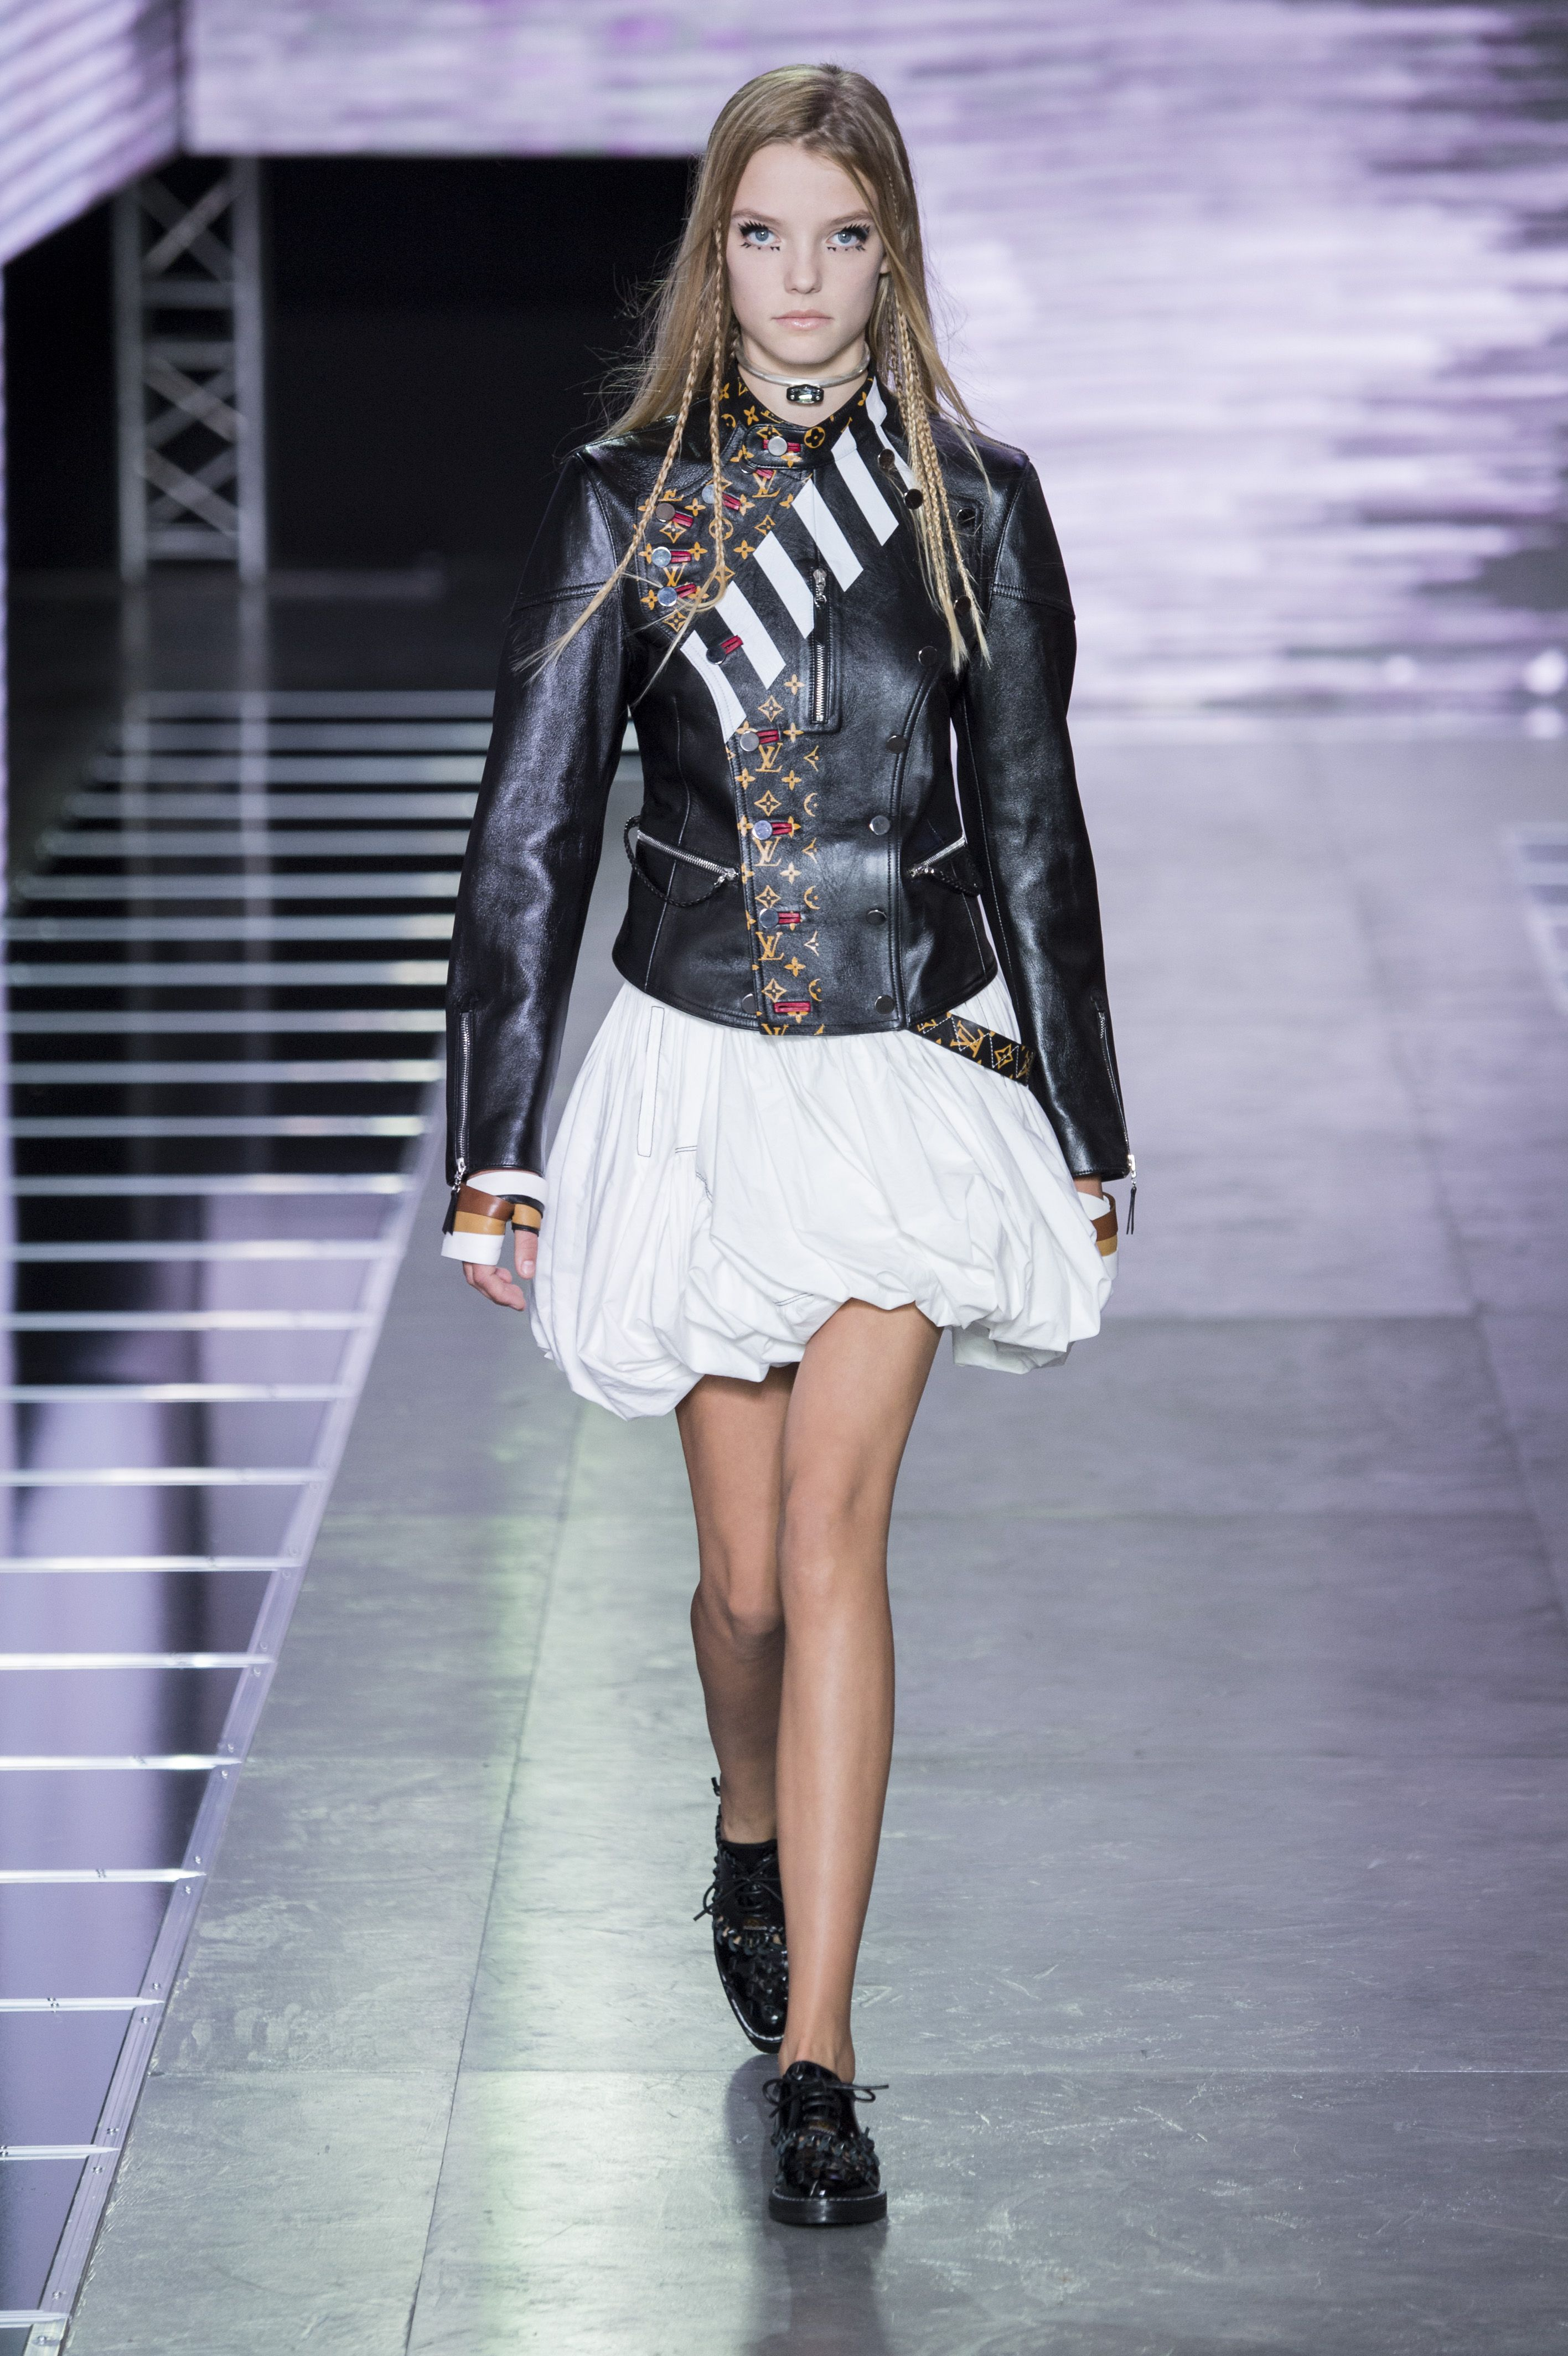 A look from the Louis Vuitton Spring-Summer 2016 Fashion Show from Artistic Director of Women's Collections Nicolas Ghesquière. Watch the show now on http://vuitton.lv/1VL0l9c